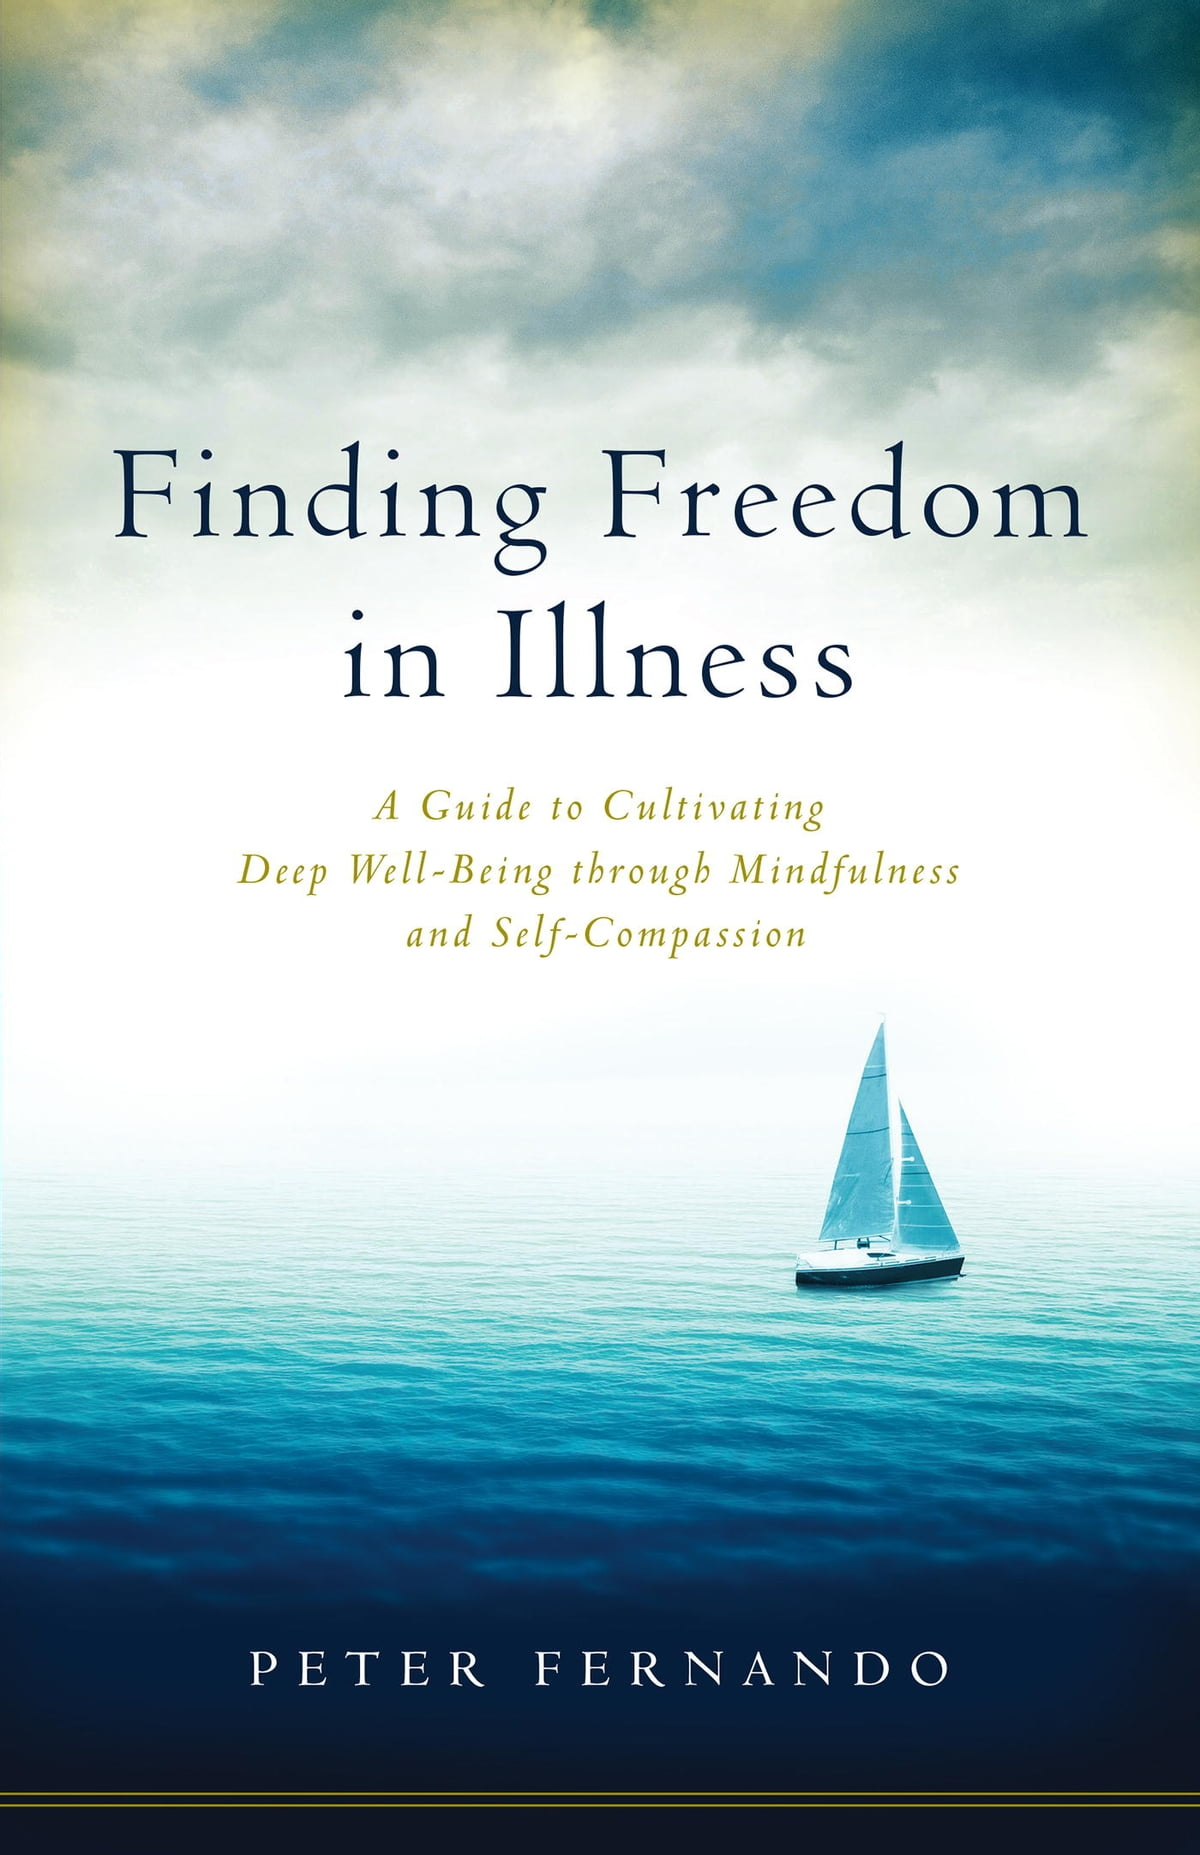 Finding Freedom In Illness Ebook By Peter Fernando  9780834840072   Rakuten Kobo